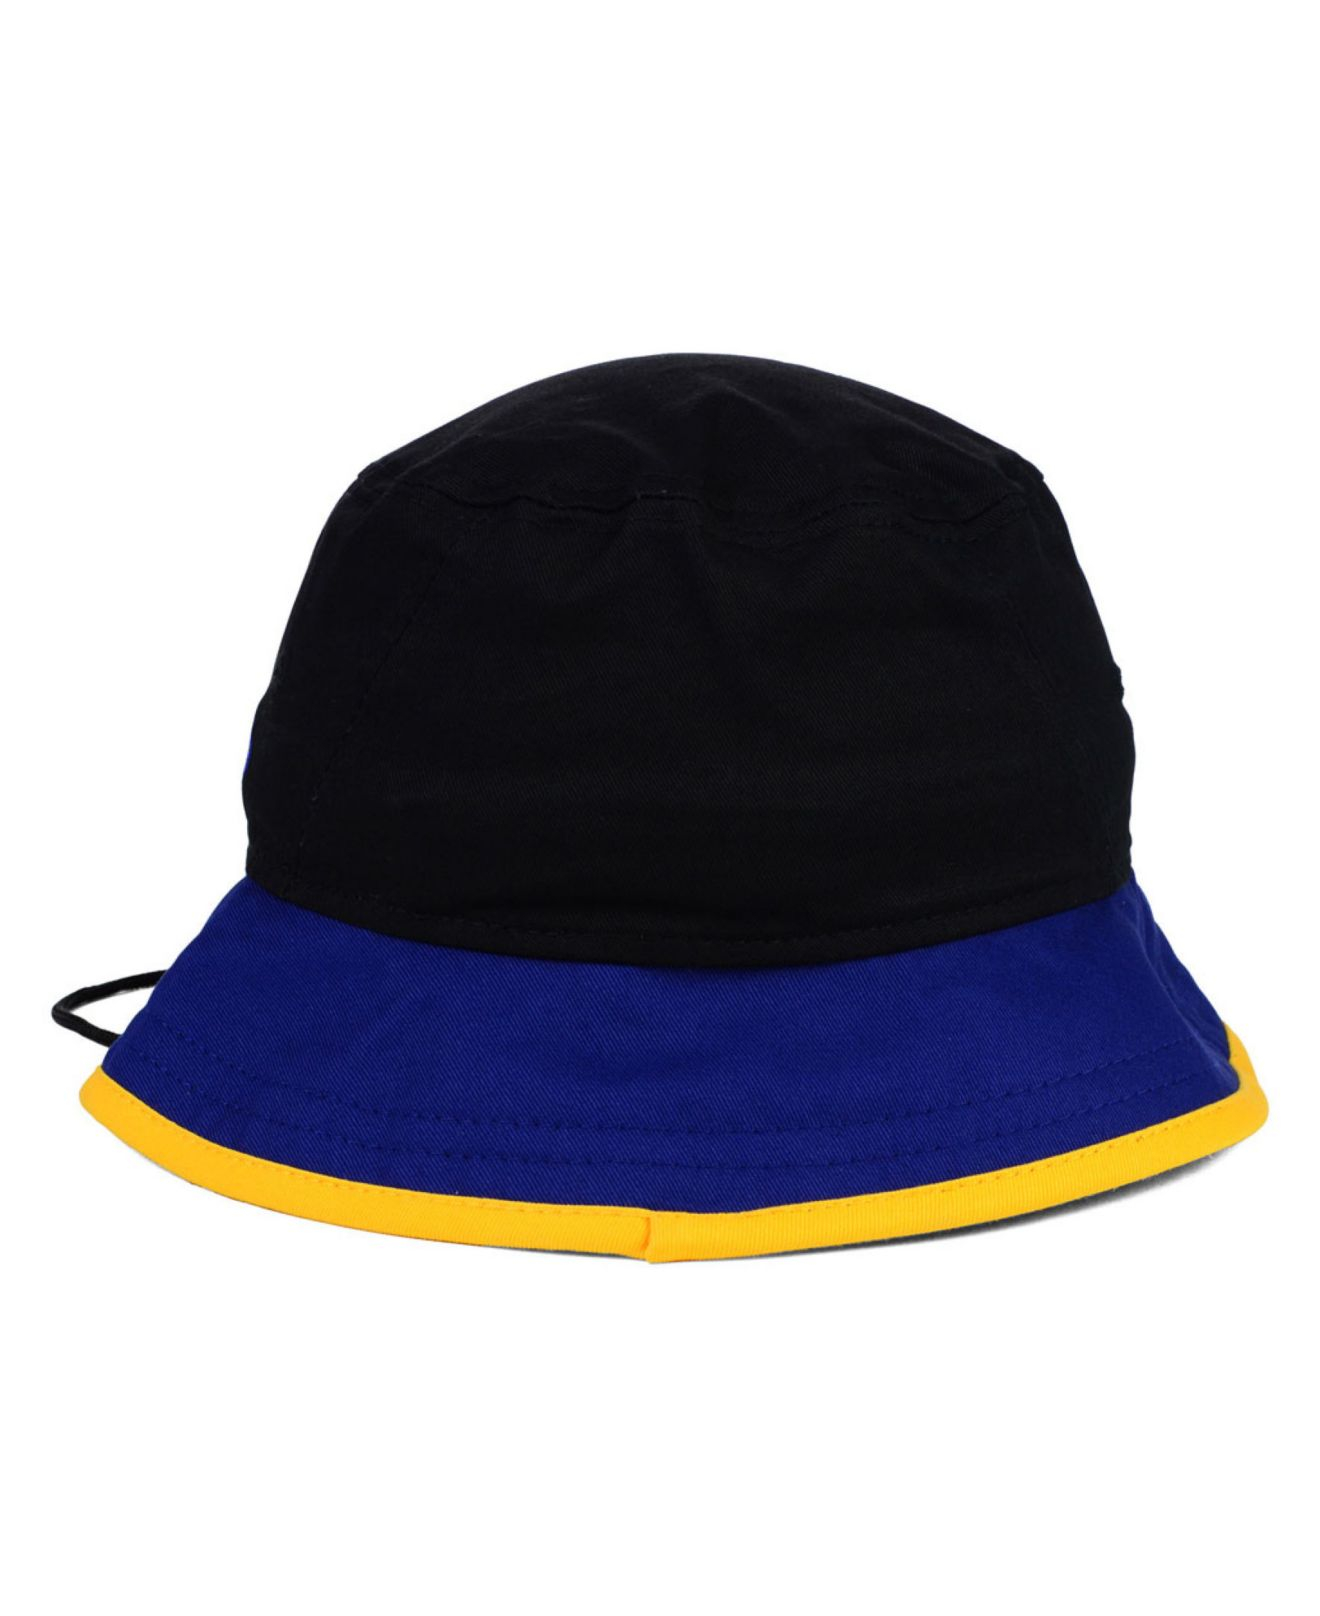 eacbd8624eb Lyst - KTZ Indiana Pacers Black-top Bucket Hat in Black for Men